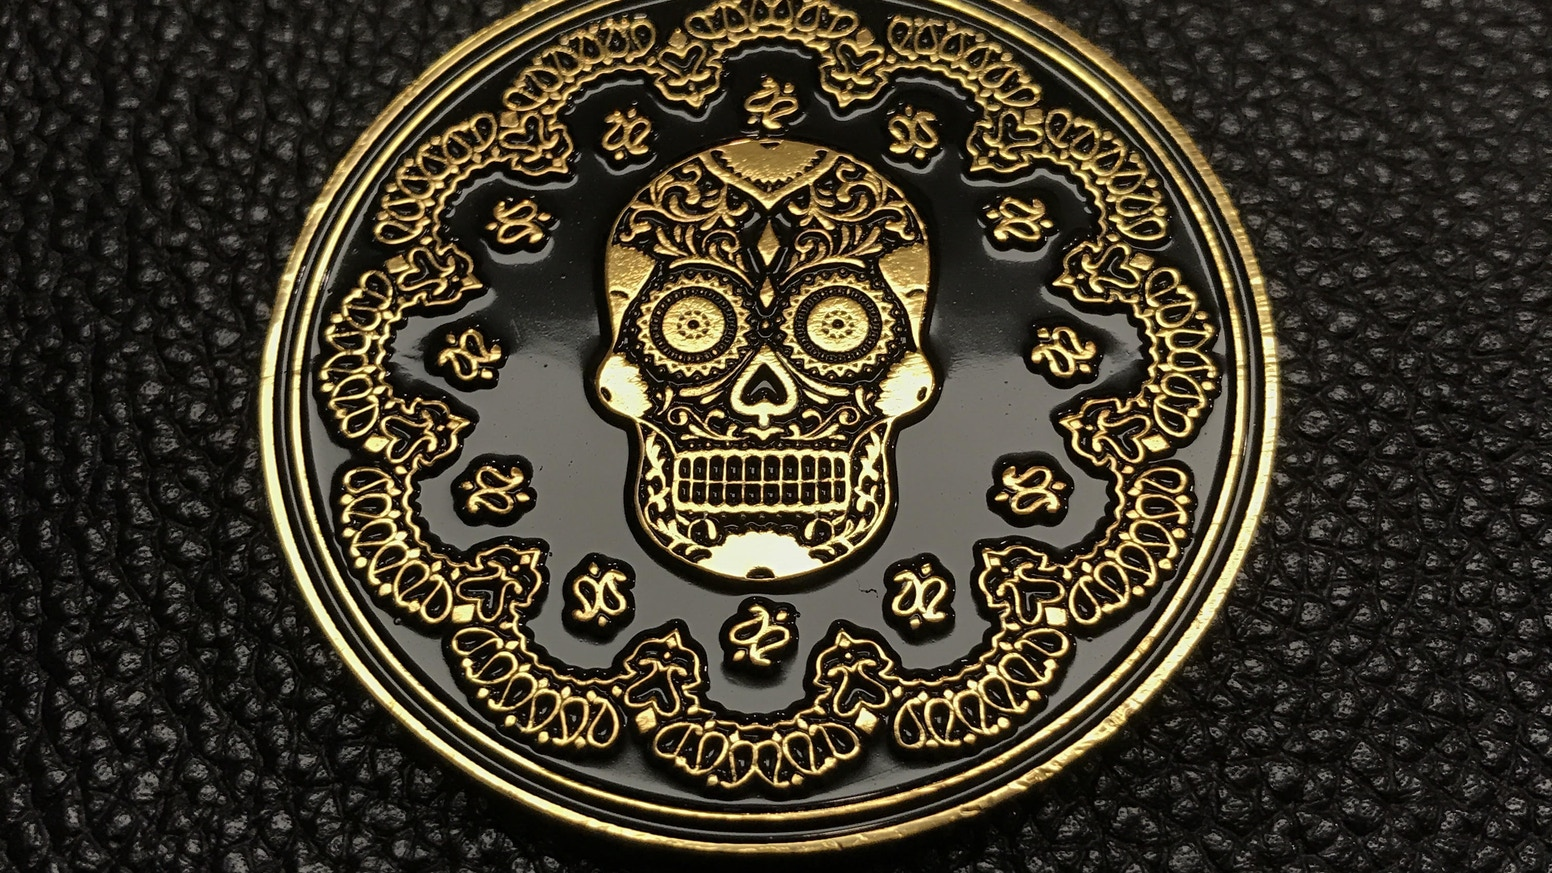 Coins beautifully designed with artwork for the Day of the Dead. Now with Dia de los Muertos Pins!